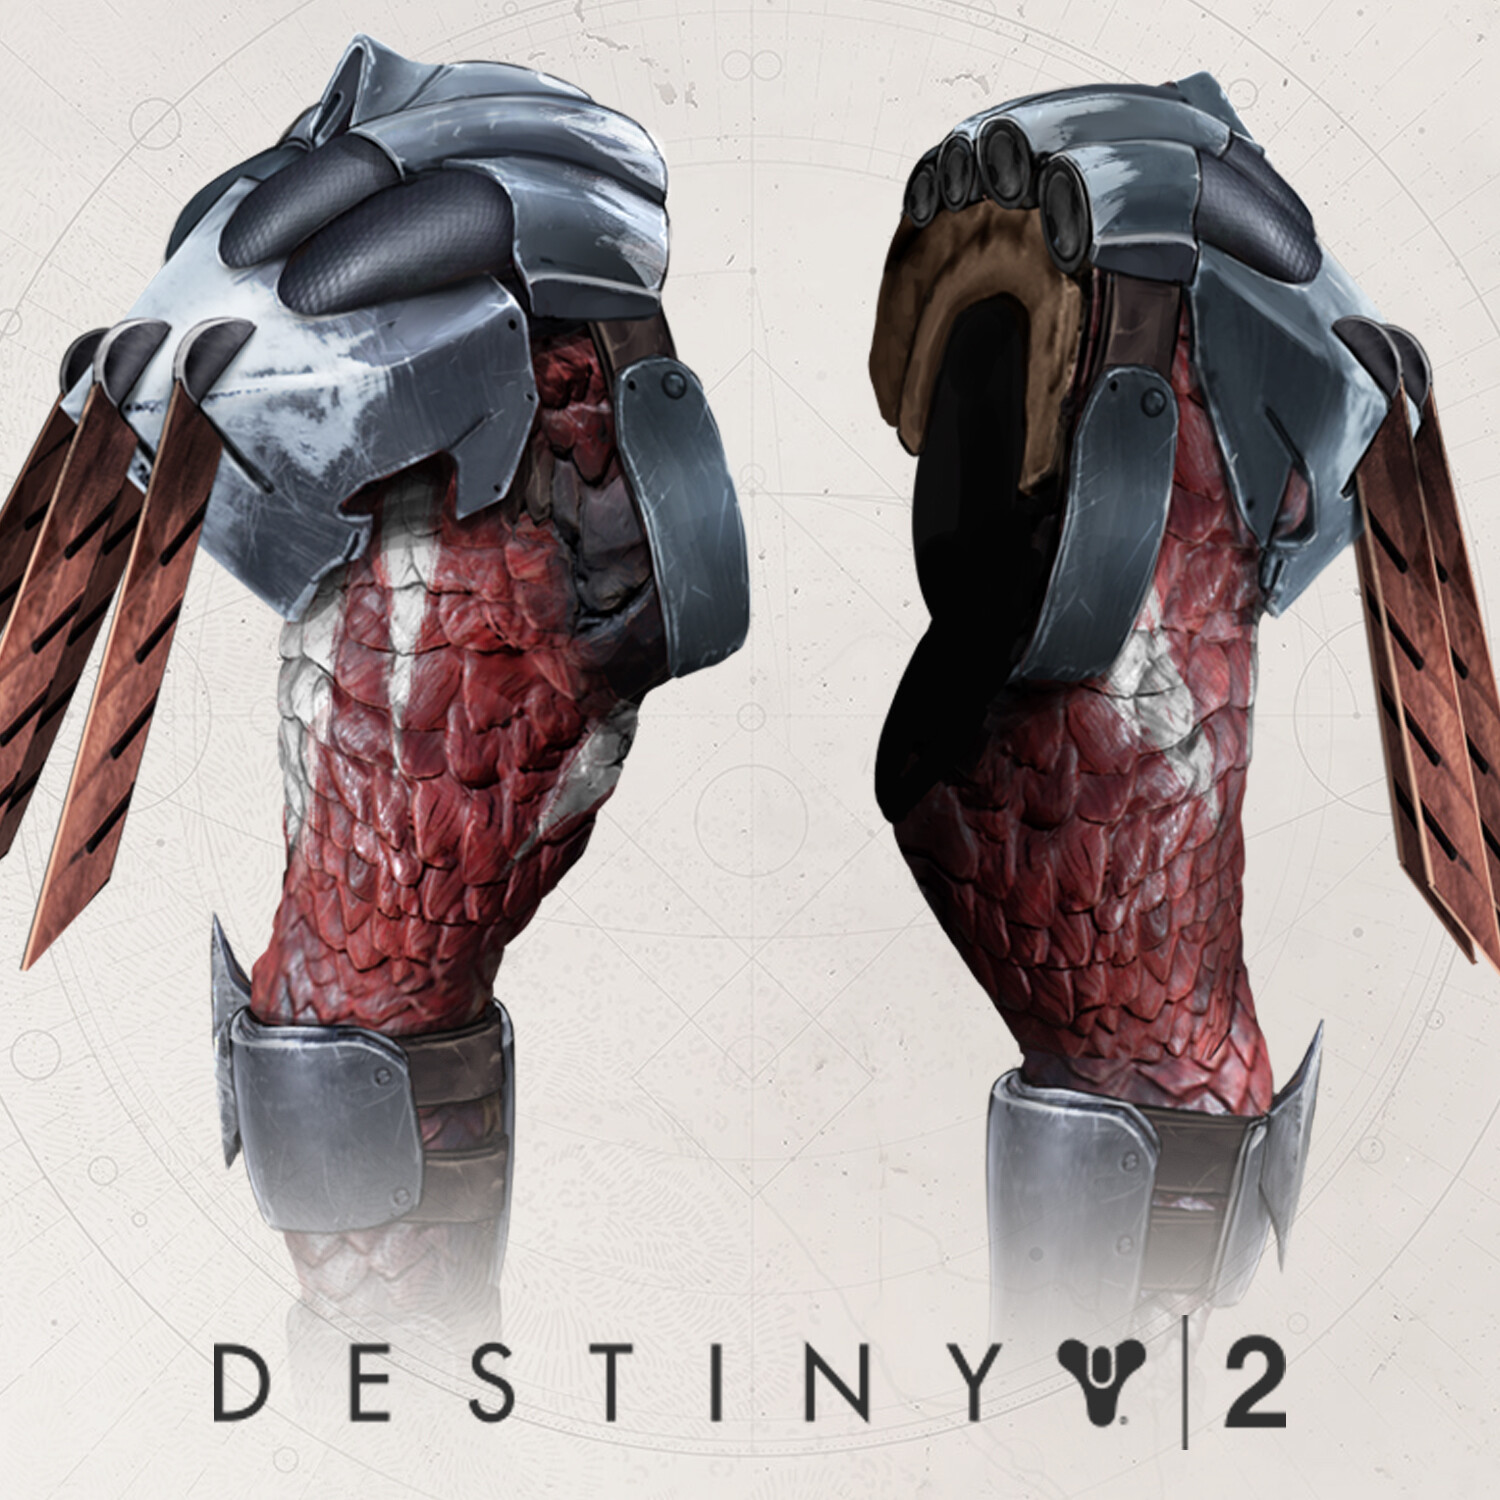 Destiny 2 - Embodiment of the Warbeast